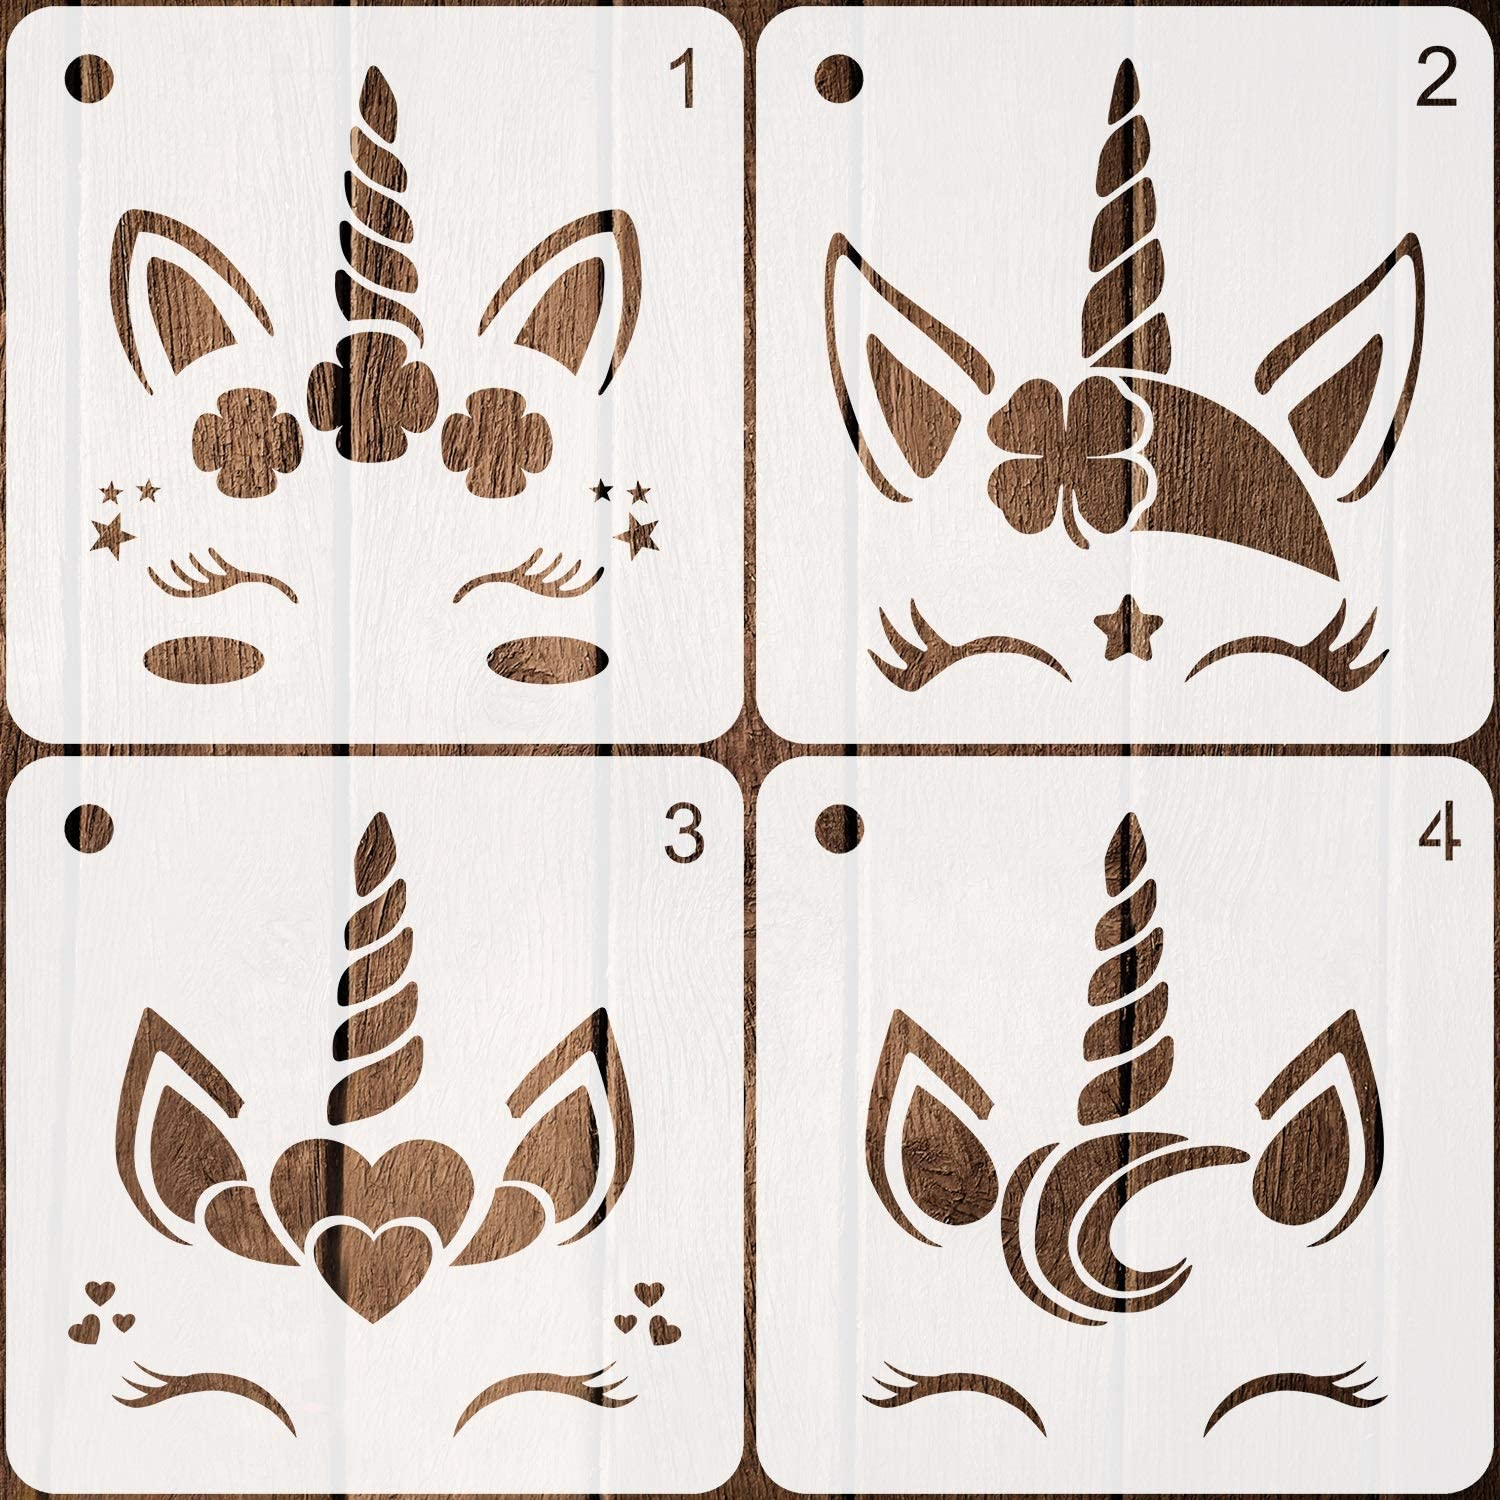 4 Pieces Unicorn Stencils Plastic Art Craft Stencils Reusable Unicorn Drawing Template for Painting on Walls Canvas Wood Furniture, 7.9 Inches